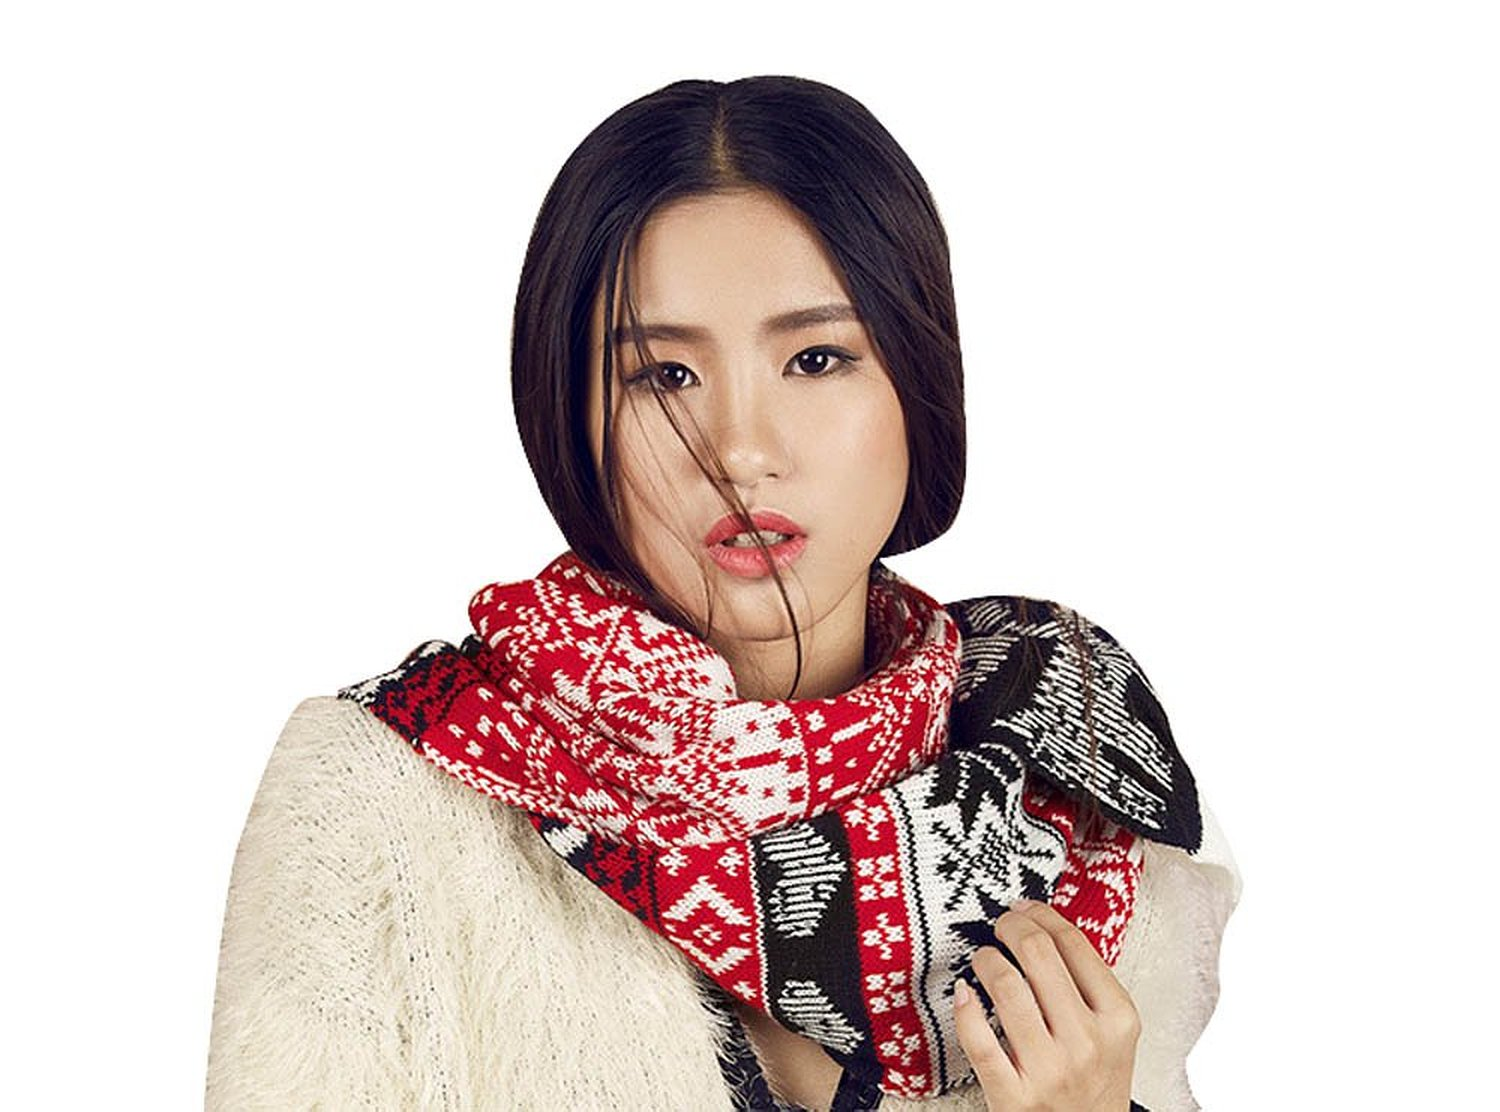 Amazon.com: KUBI Women's Holiday View Print Winter Scarf Reindeer Snowflakes Hearts (Red   Black   White): Clothing